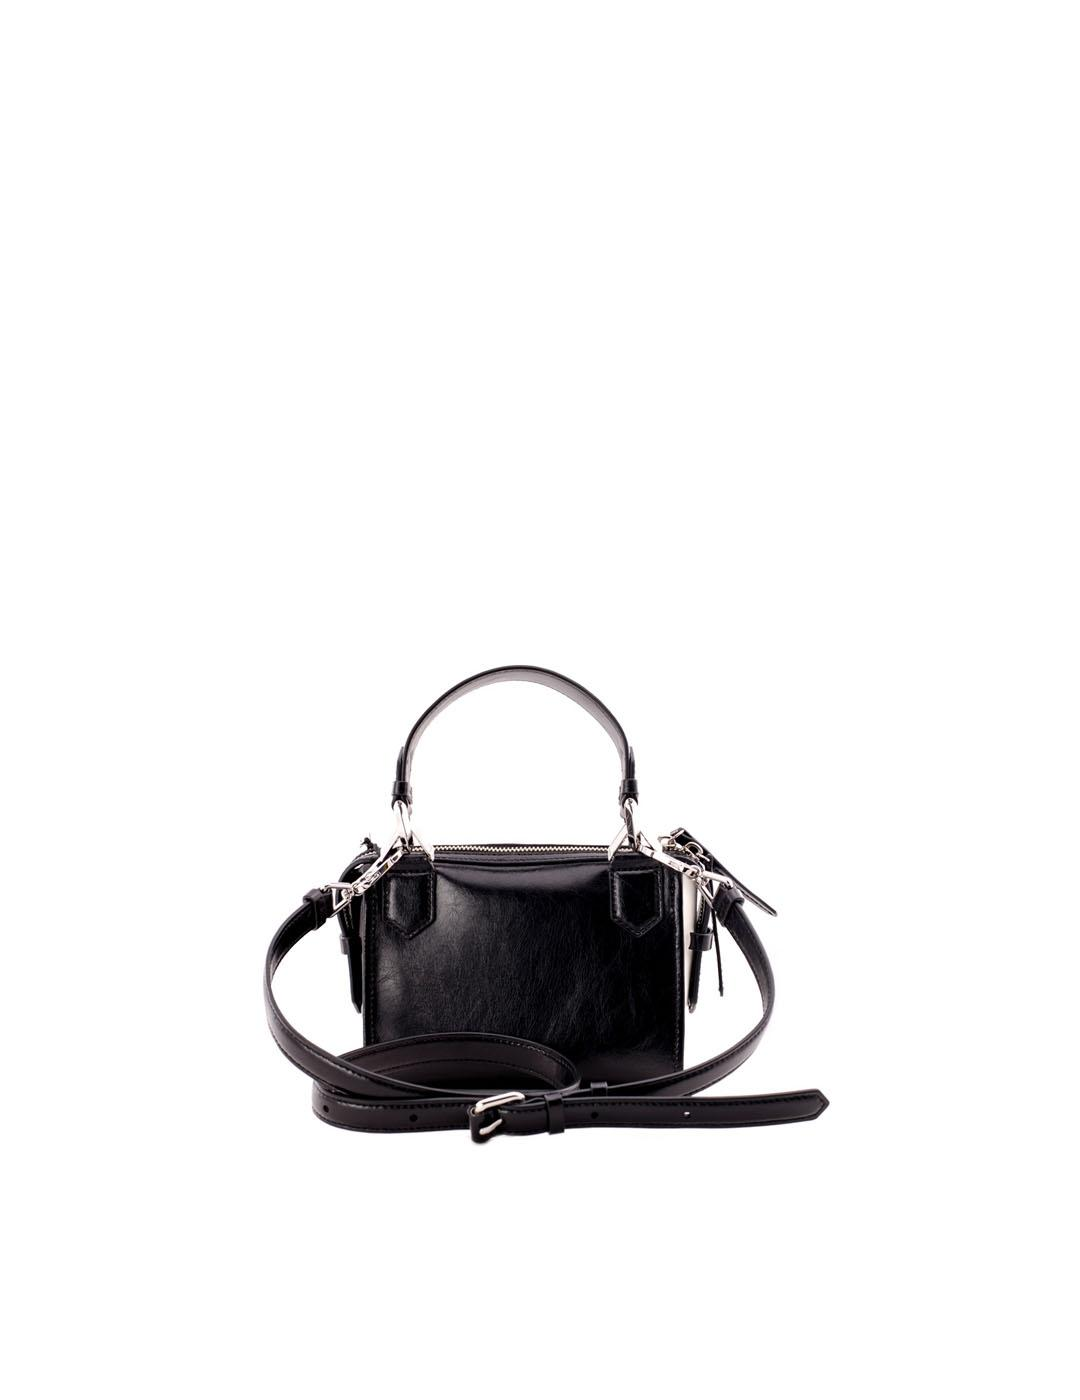 Bolso Karl Lagerfeld negro k/Slash small Top Handle